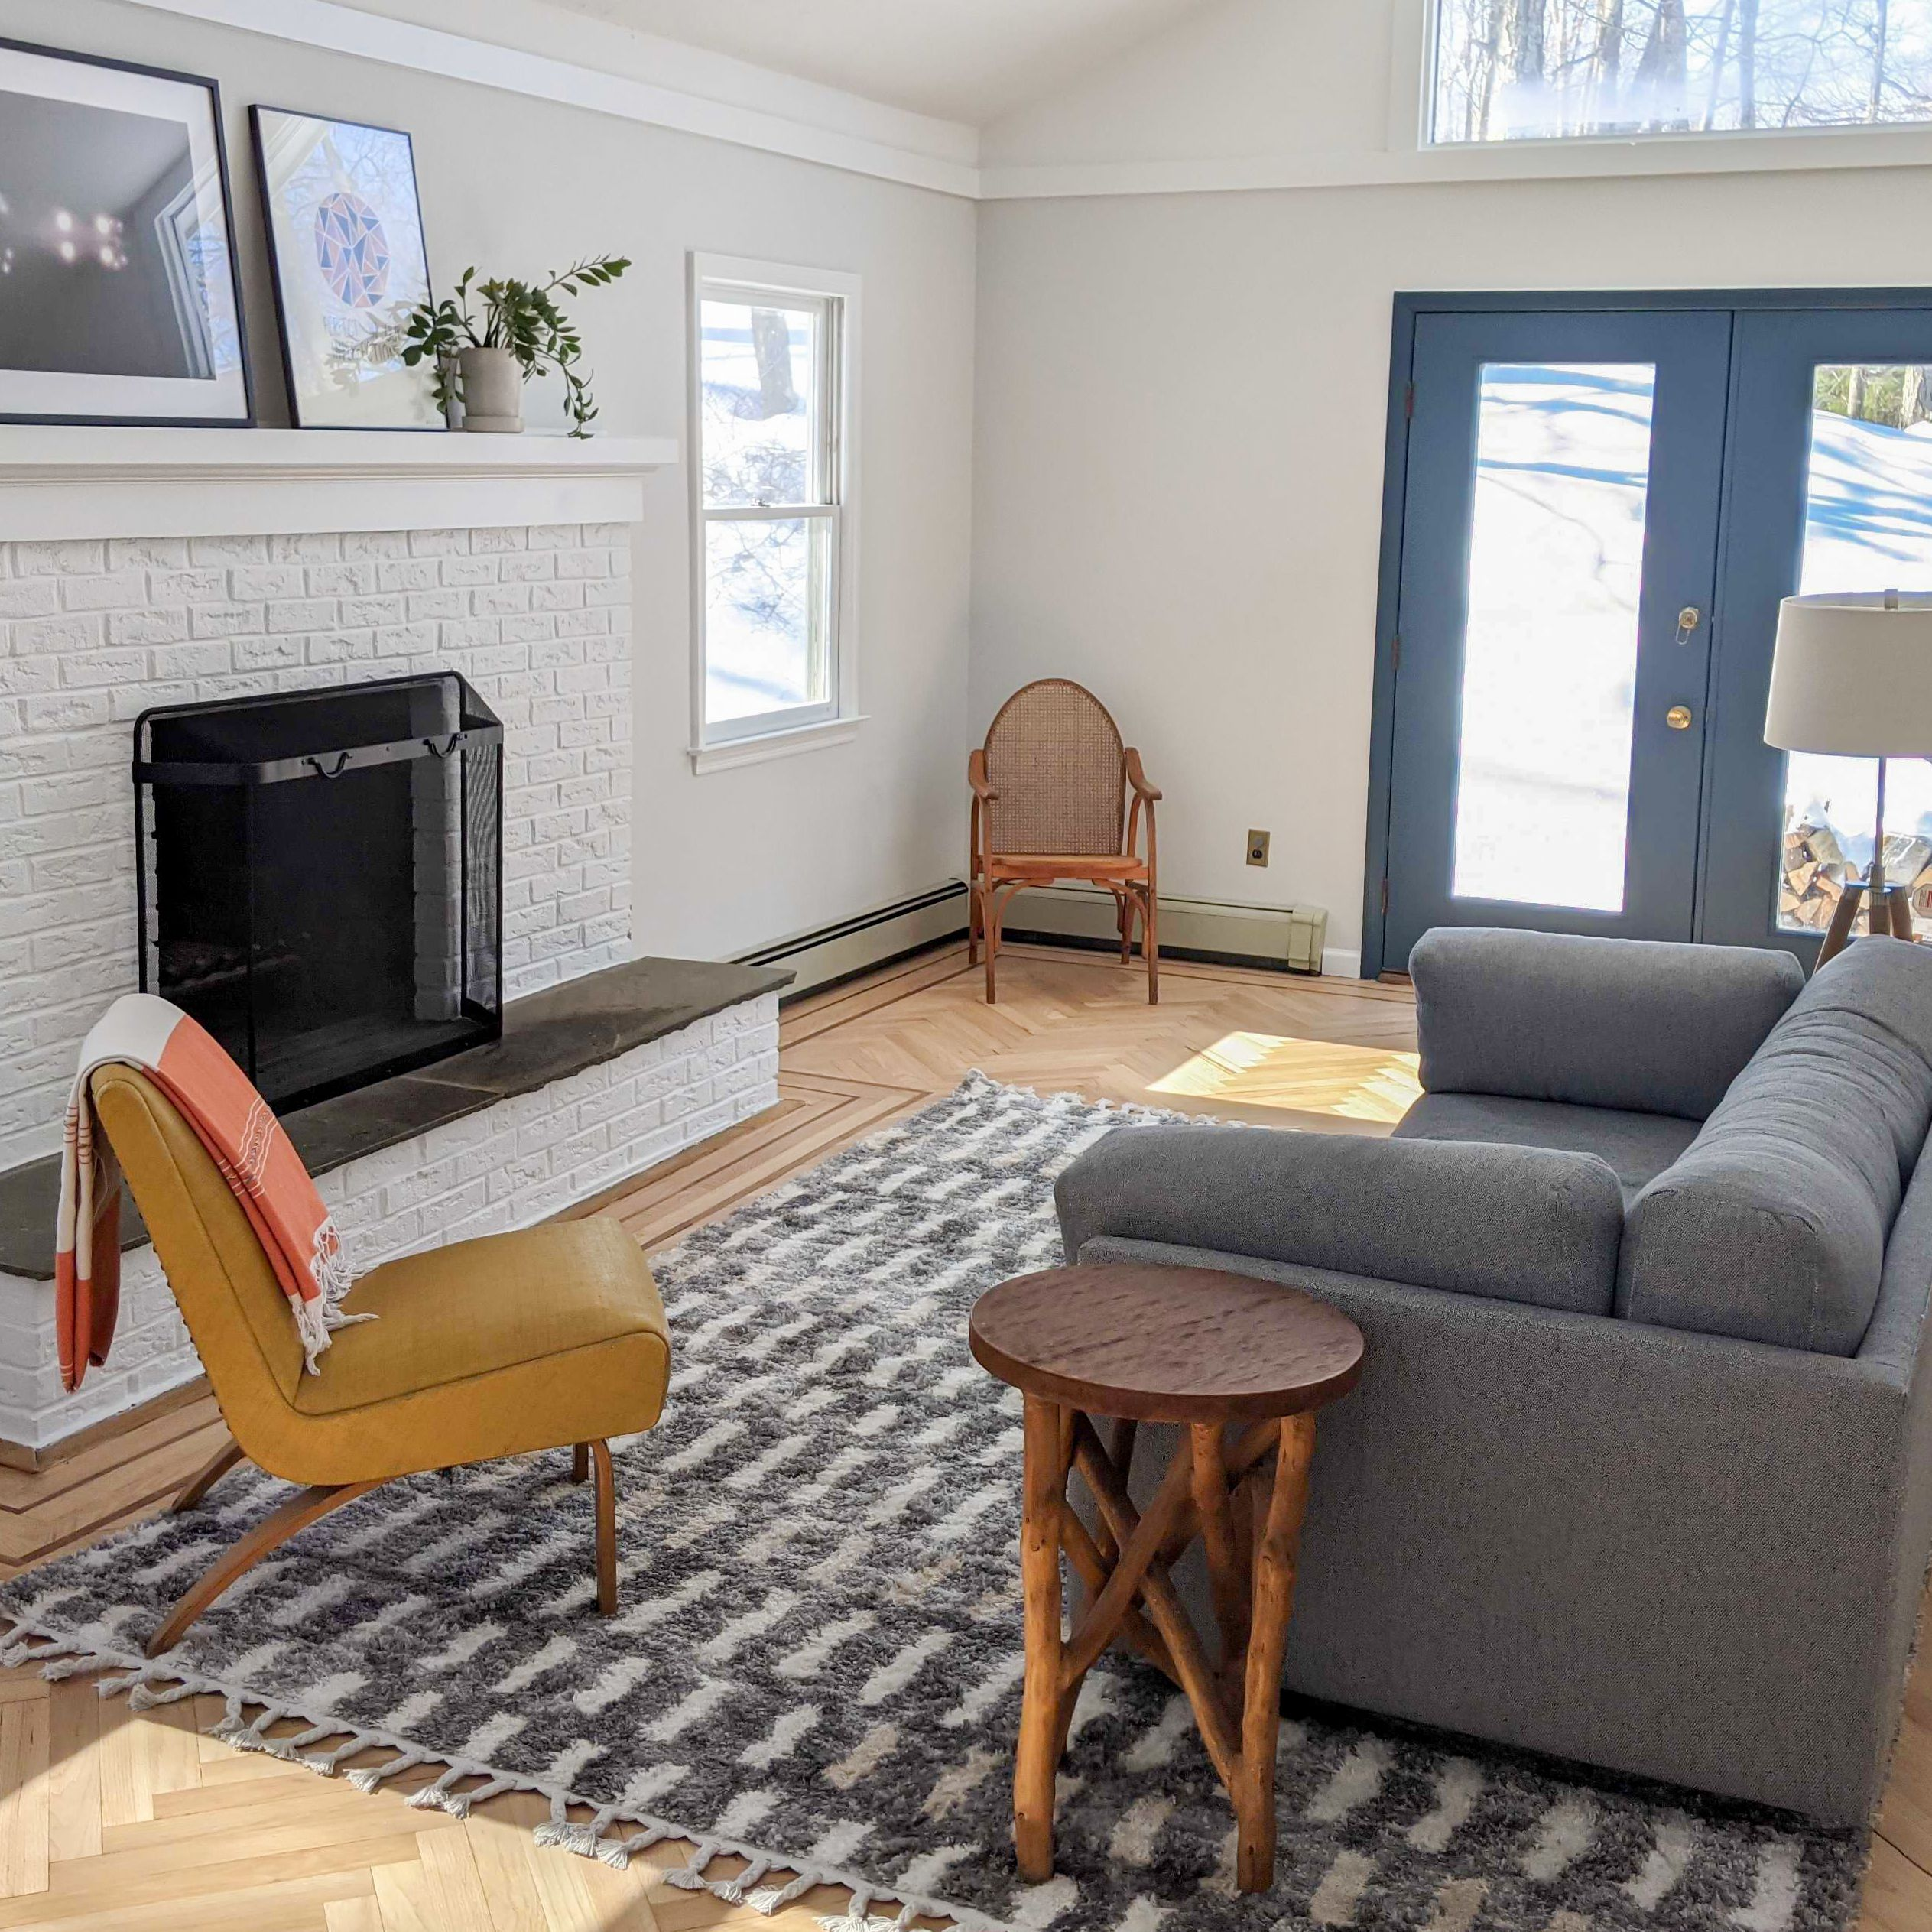 How To Choose The Best Carpet For A Living Room